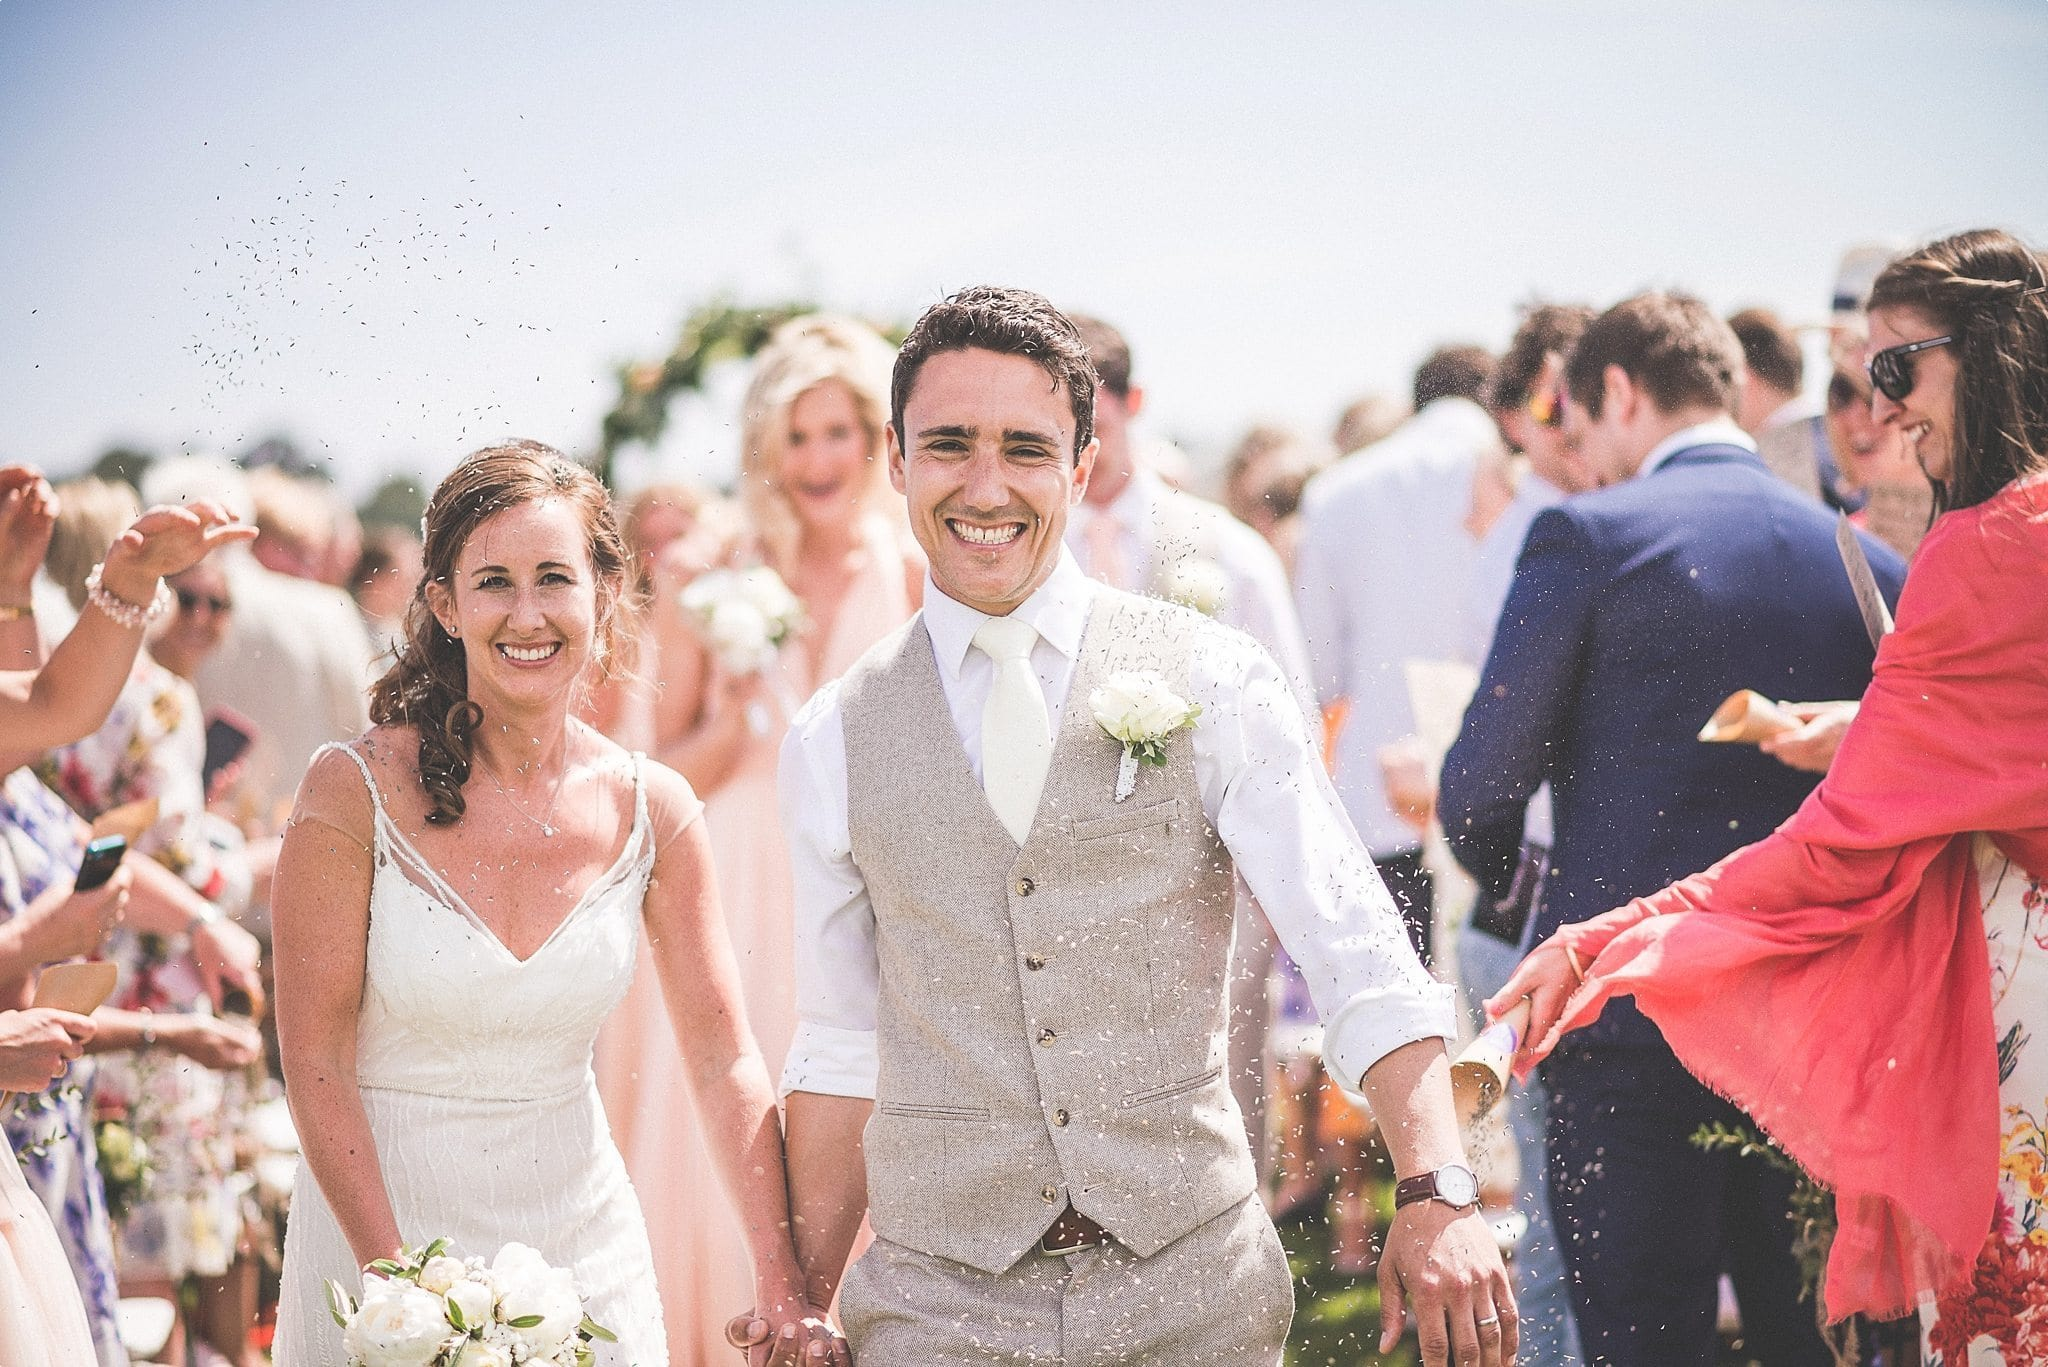 Bride and groom walking down the aisle under a lot of lavender confetti